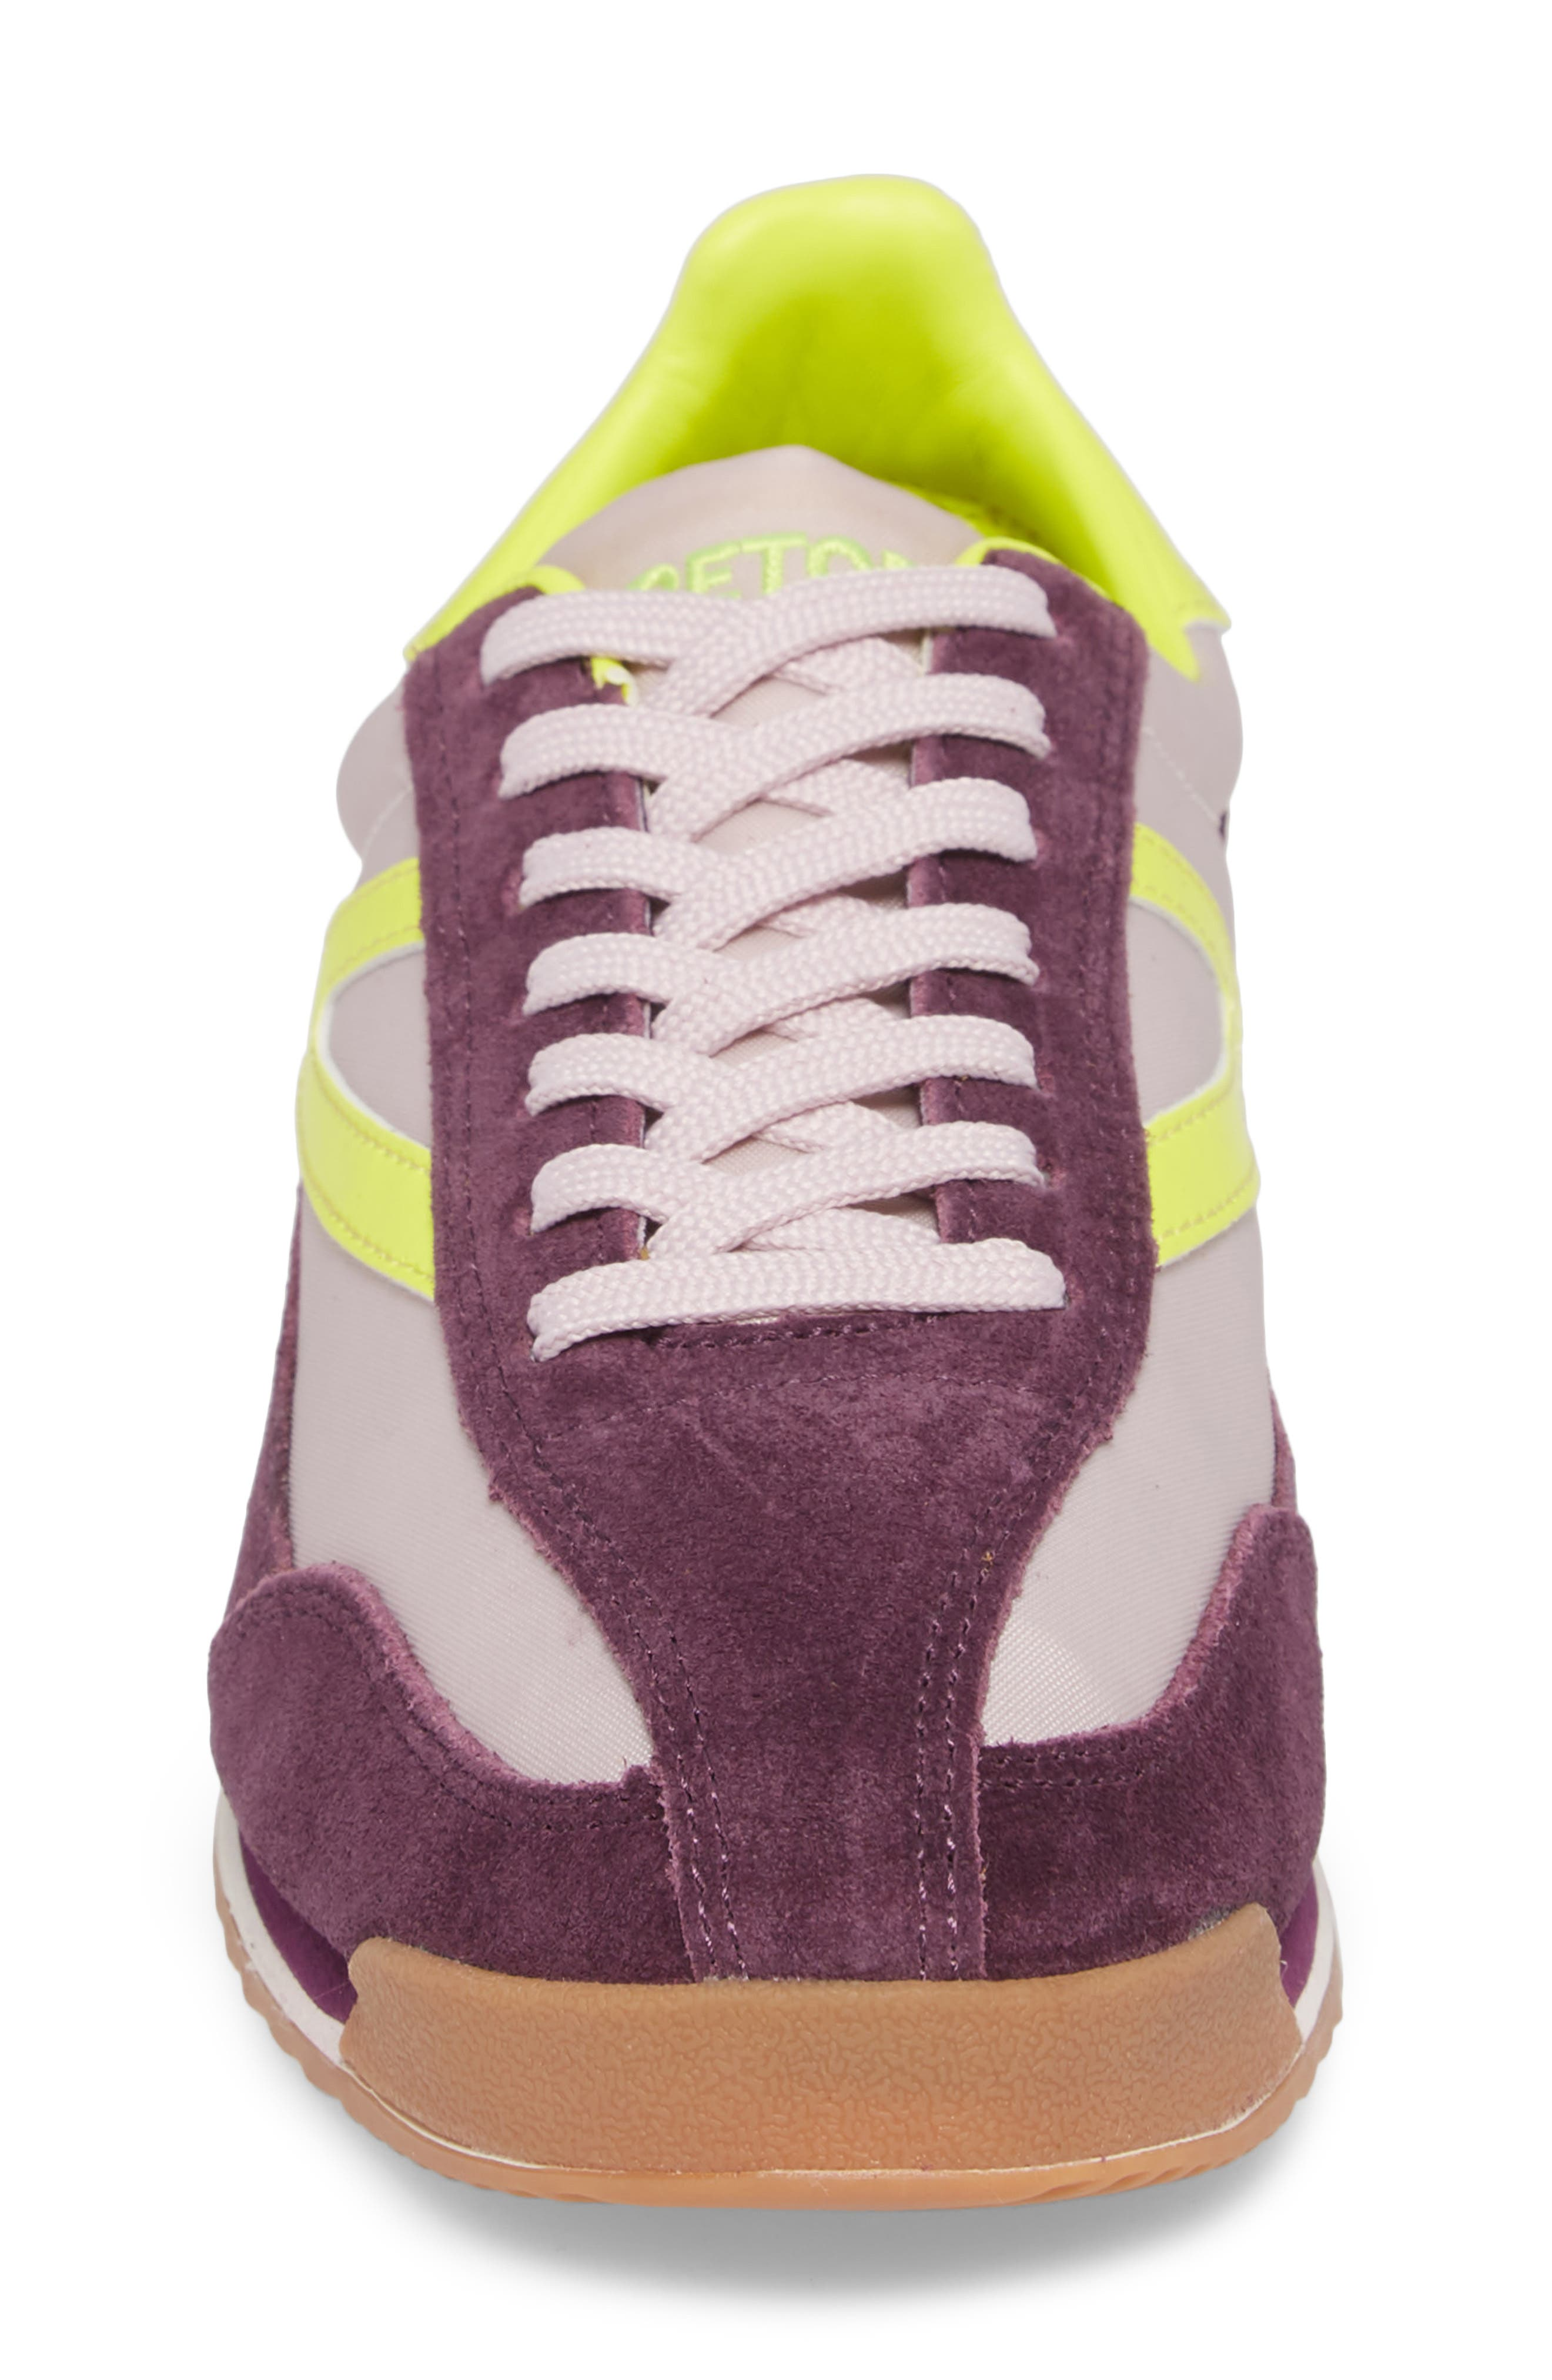 Rawlins 2 Sneaker,                             Alternate thumbnail 6, color,                             Eggplant/ Summer Lilac/ Yellow